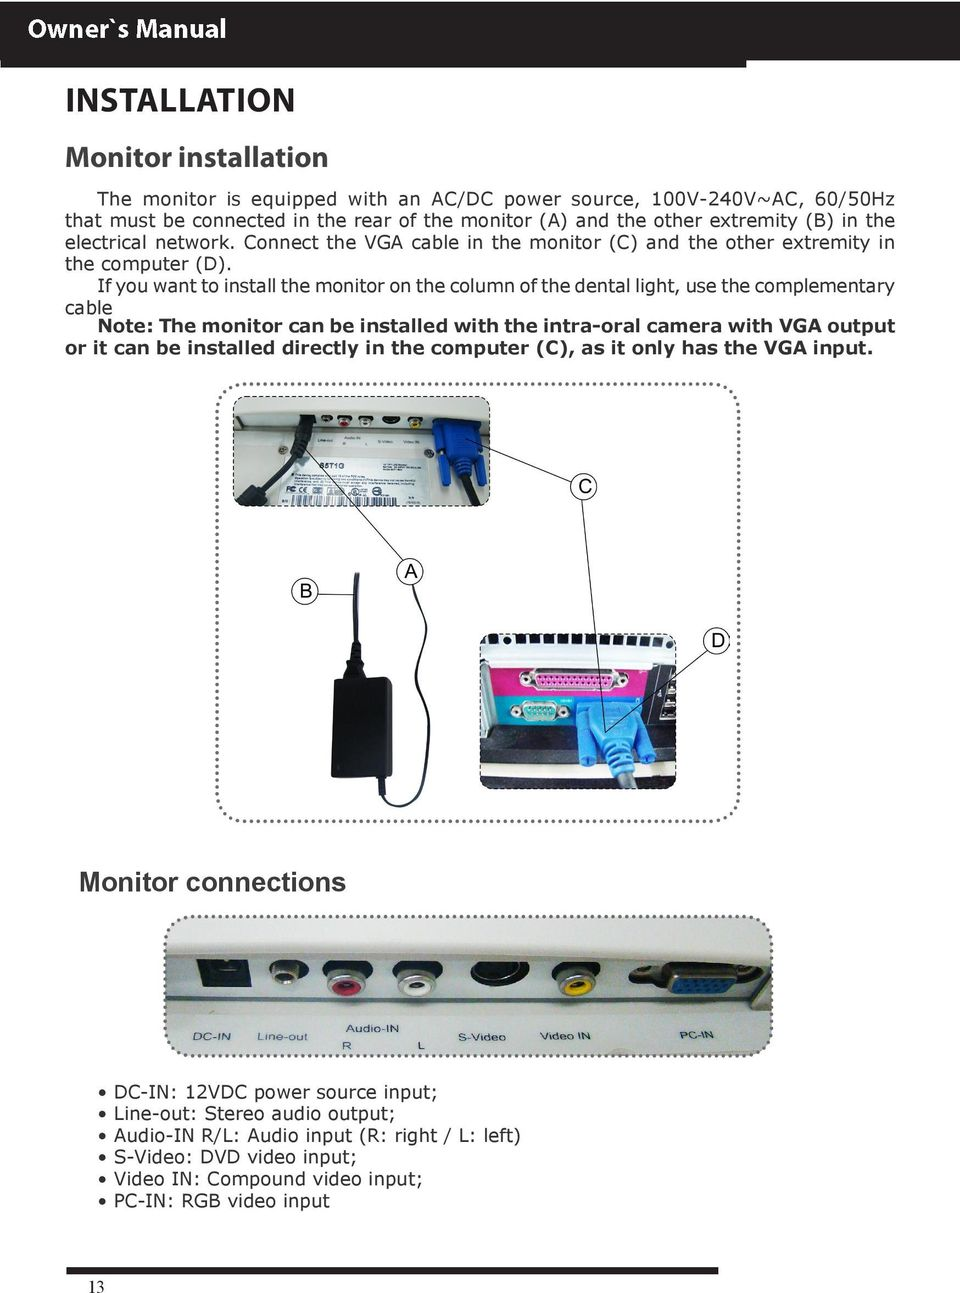 If you want to install the monitor on the column of the dental light, use the complementary cable Note: The monitor can be installed with the intra-oral camera with VGA output or it can be